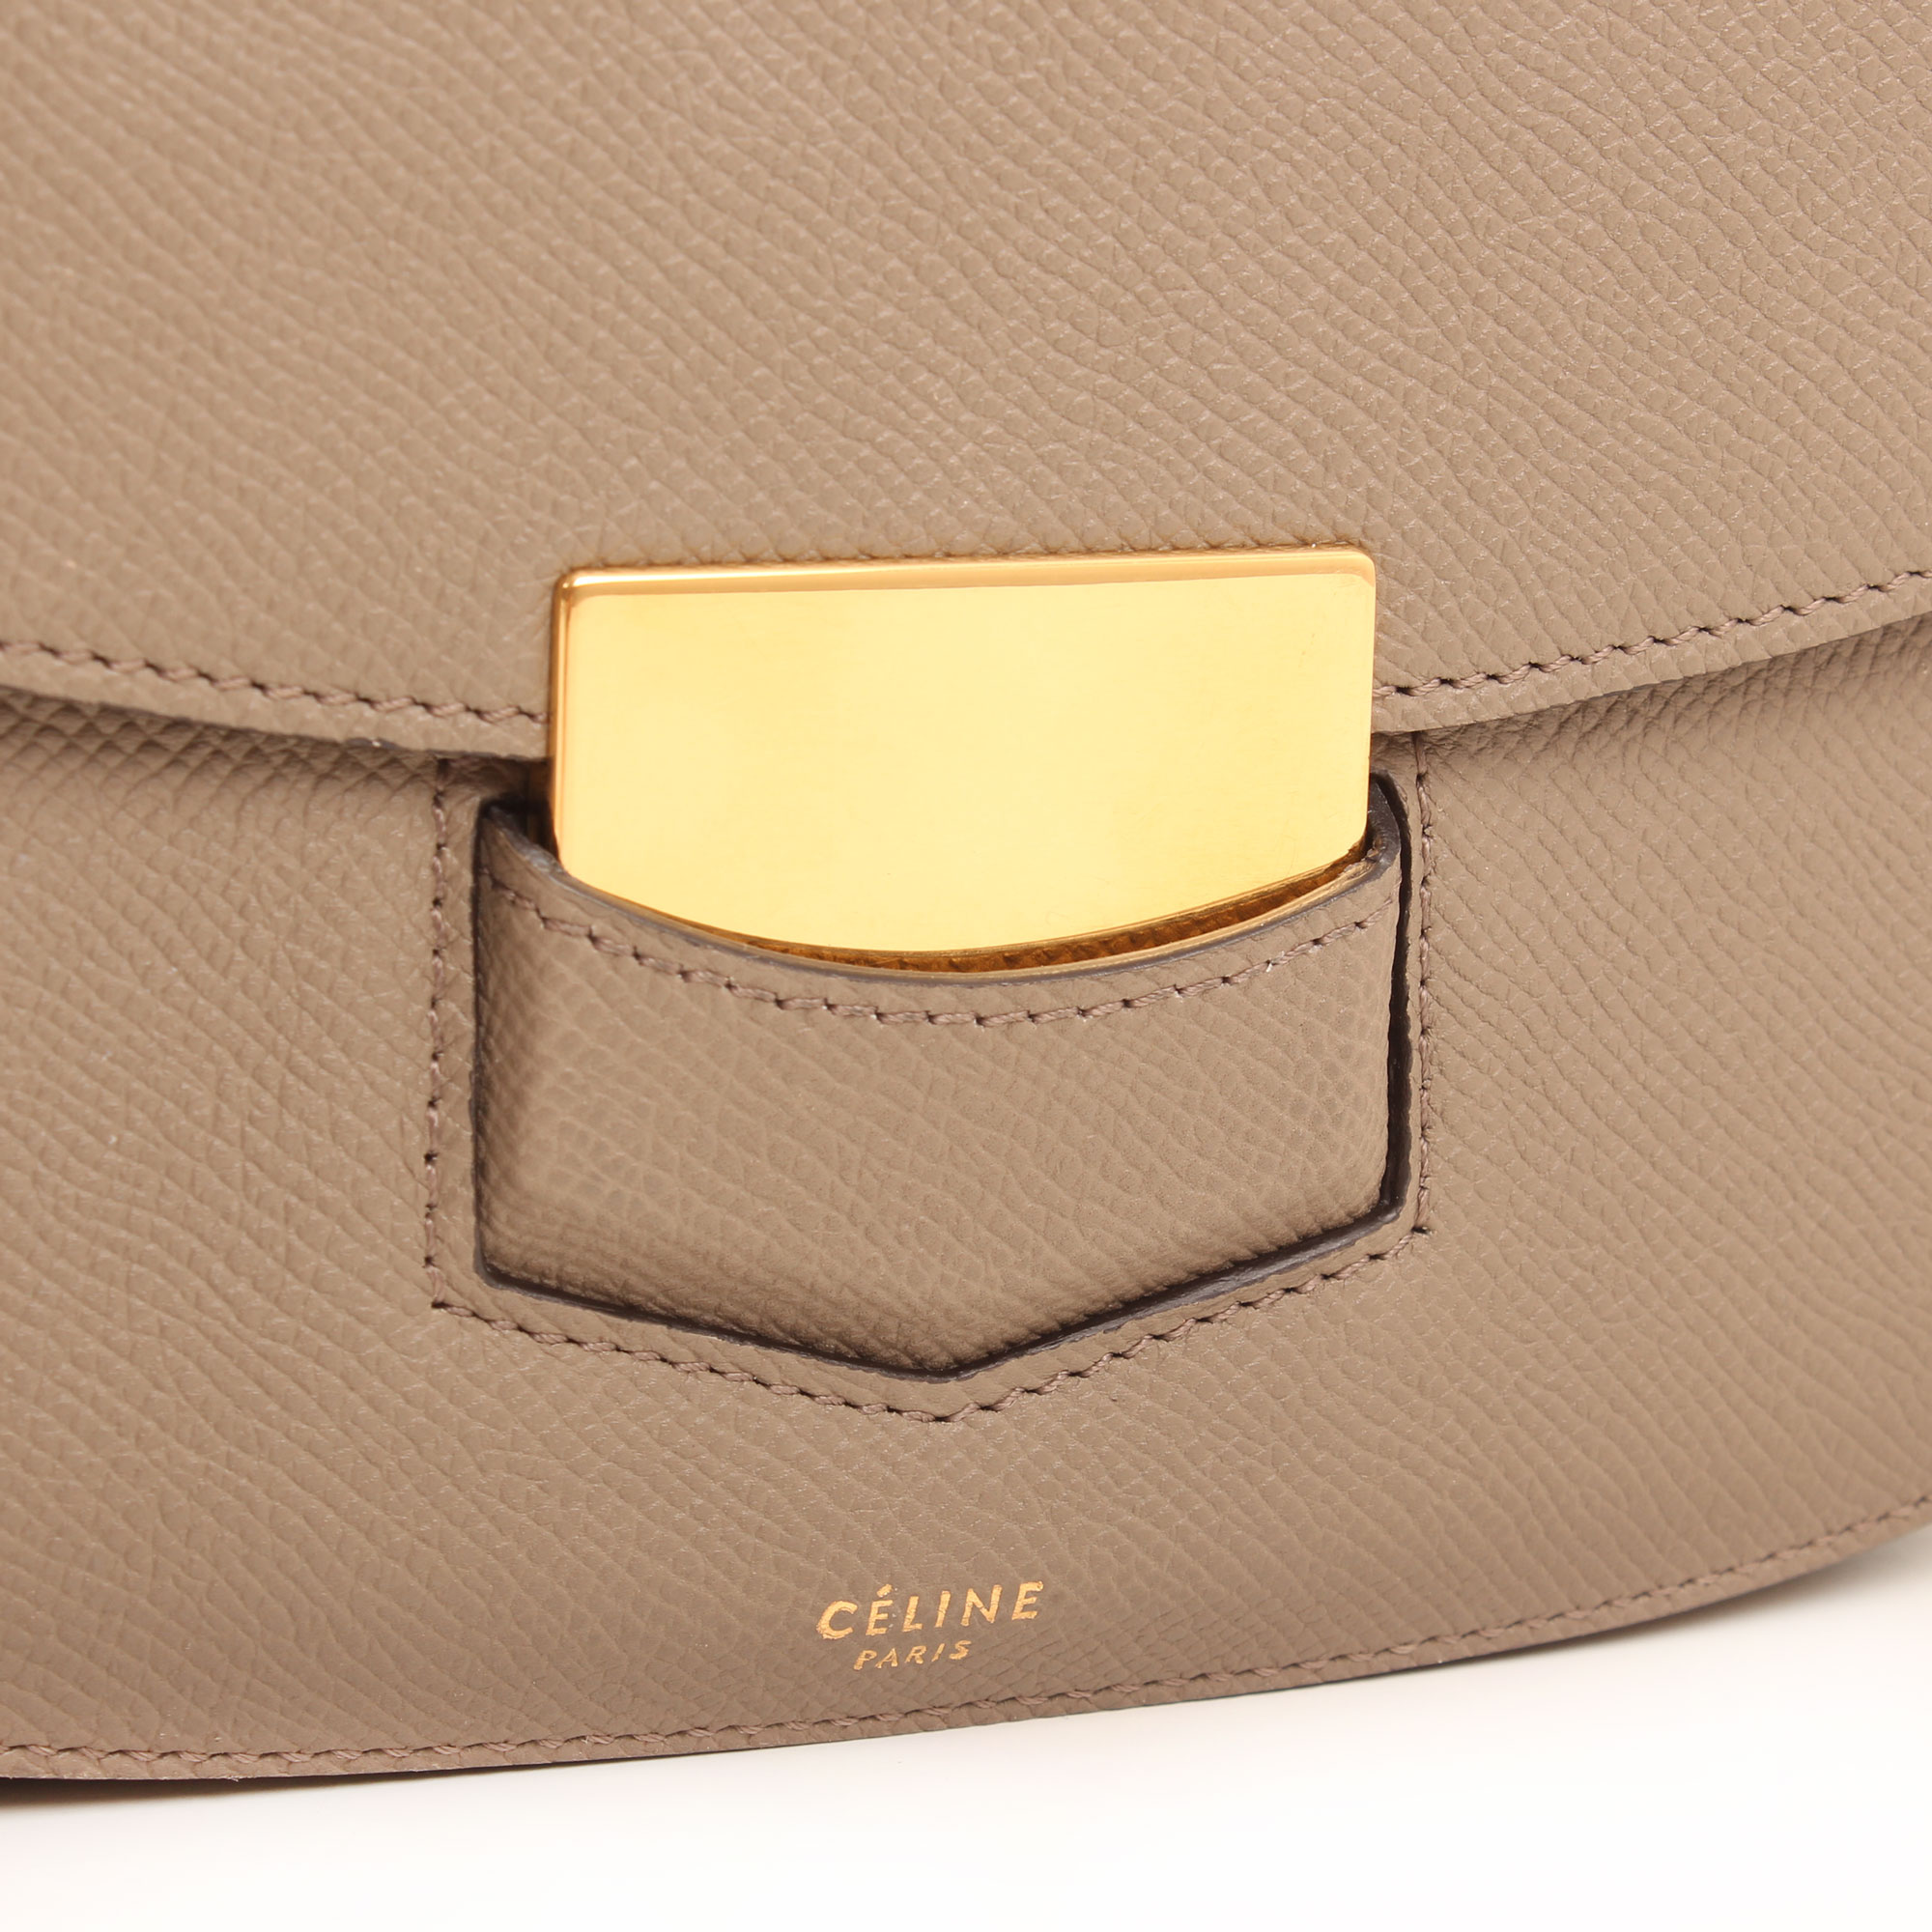 Clasp image of celine trotteur crossbody bag grey grain leather